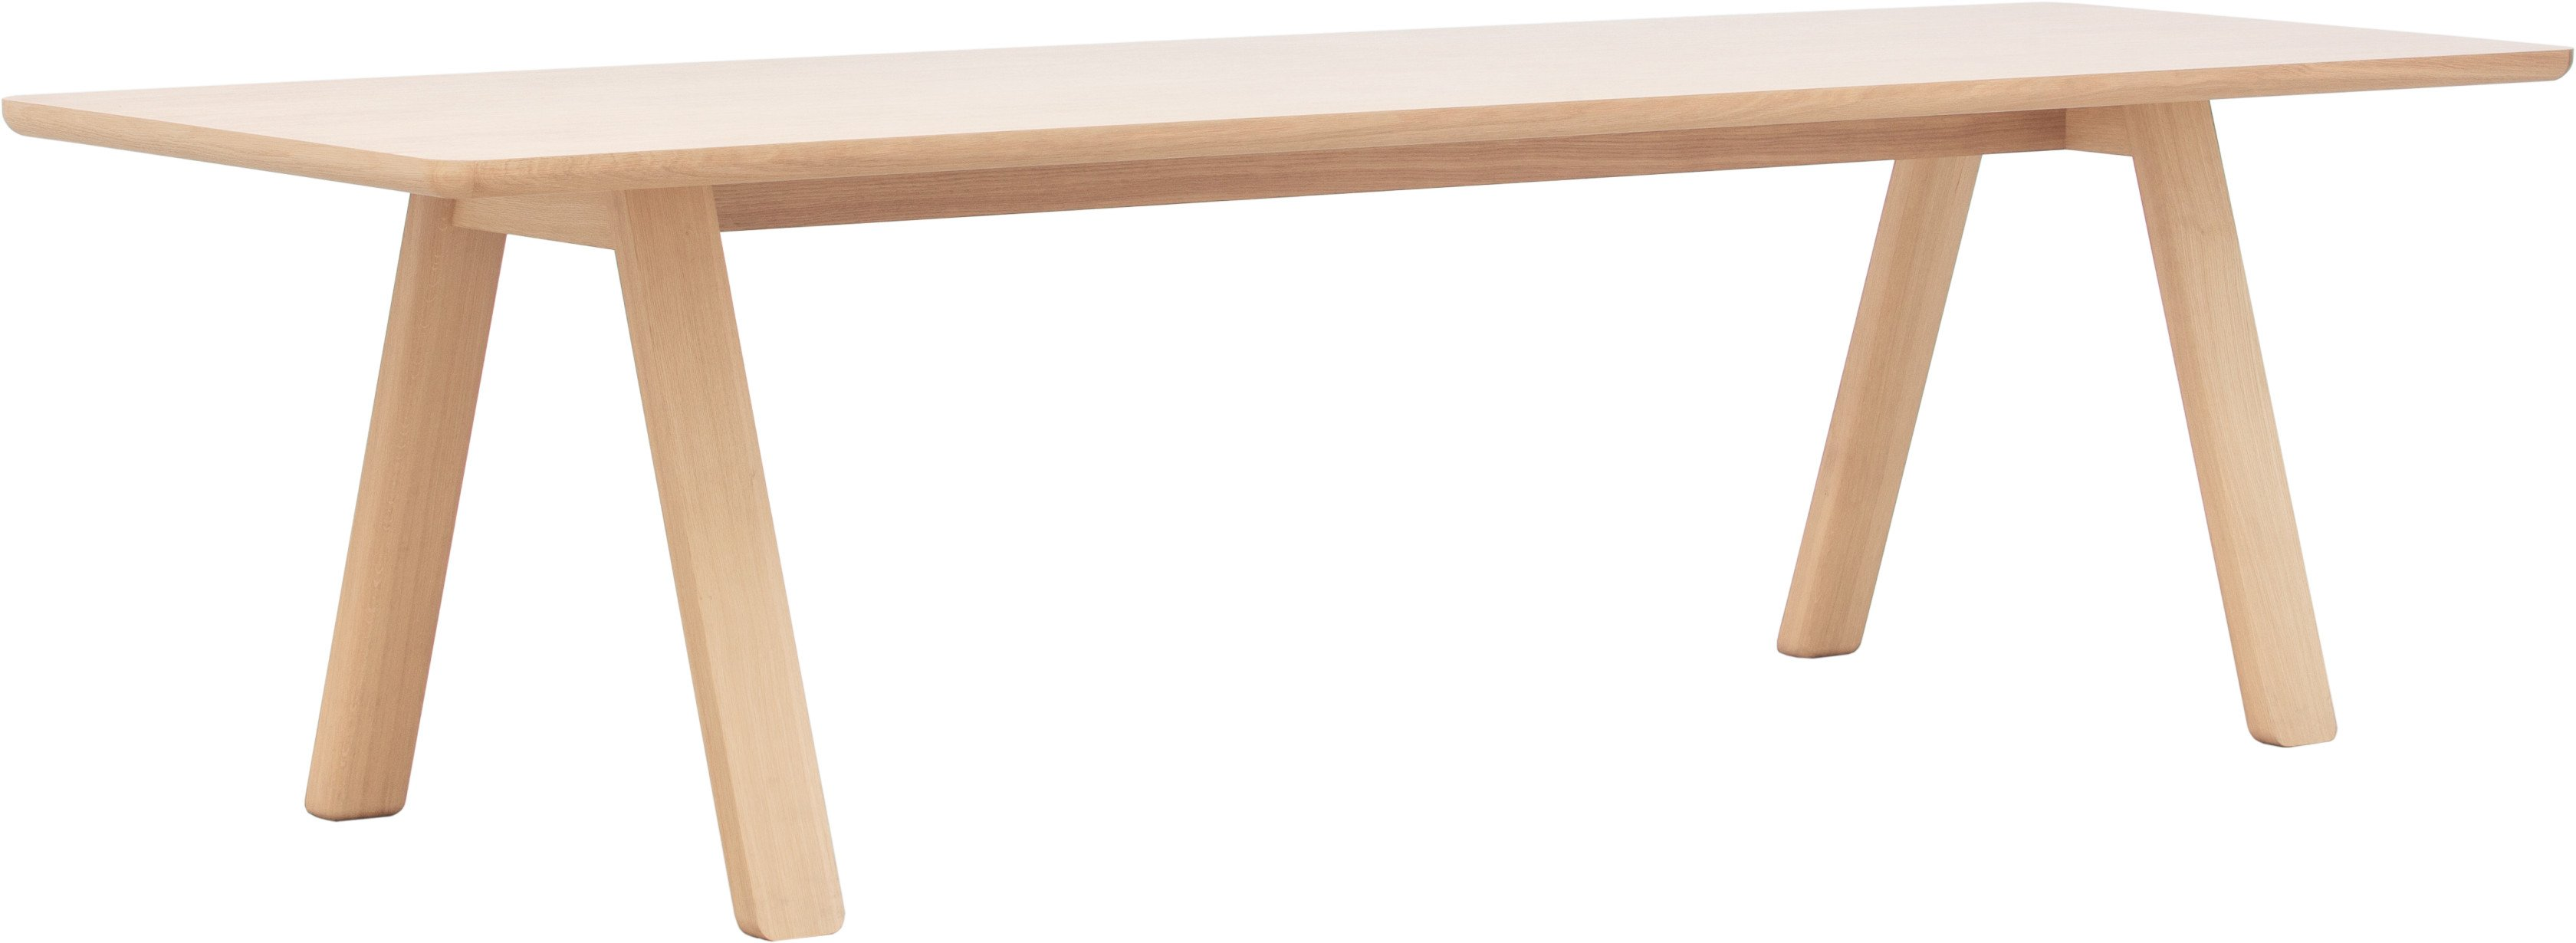 Stelvio Table 220x90 Beech by A. Gufler, TON